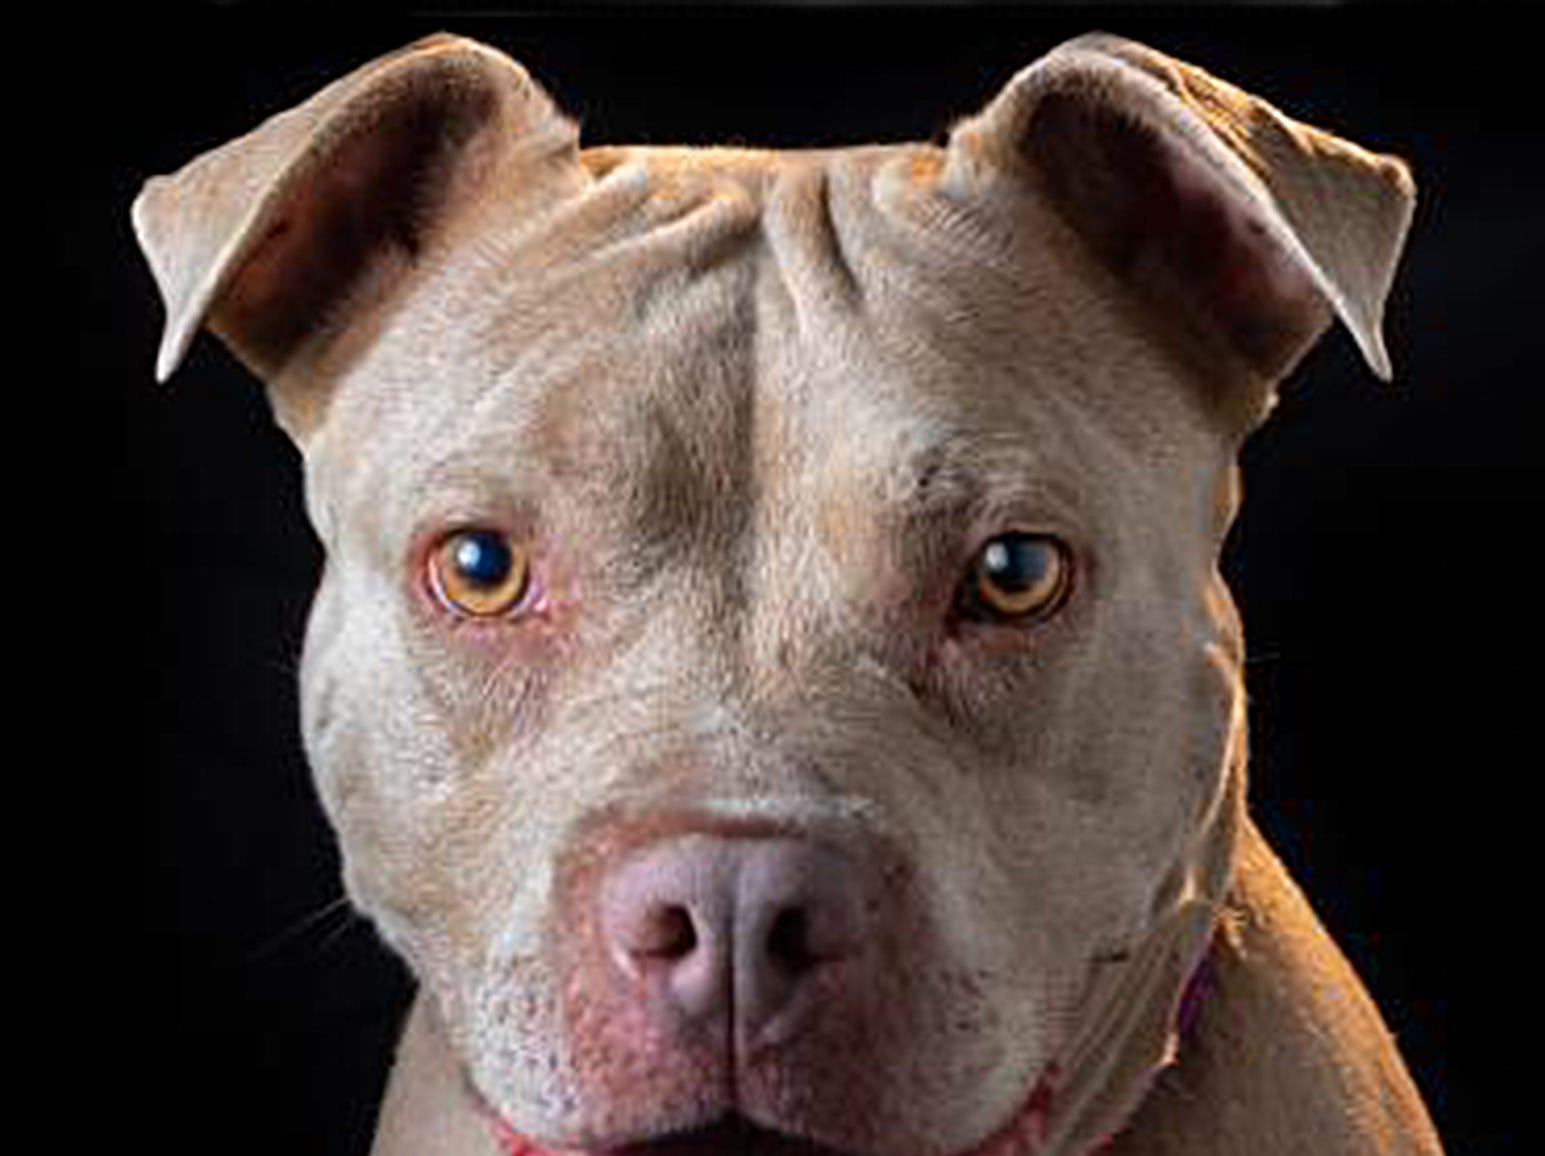 If you're looking for a best friend, Nirvana is your girl. She is an affectionate cuddle bug. Nirvana loves to play fetch, and she walks well on leash. She loves to just hang out with her people. She would be best suited for an active family and being the only dog in the household. Come and meet Nirvana today and let her lick her way into your heart. Nirvana is at the Simi location of Ventura County Animal Services, 670 W. Los Angeles Ave., Simi Valley. Nirvana's ID number is A689950. For more information on other animals available through Ventura County Animal Services, go to www.vcas.us.